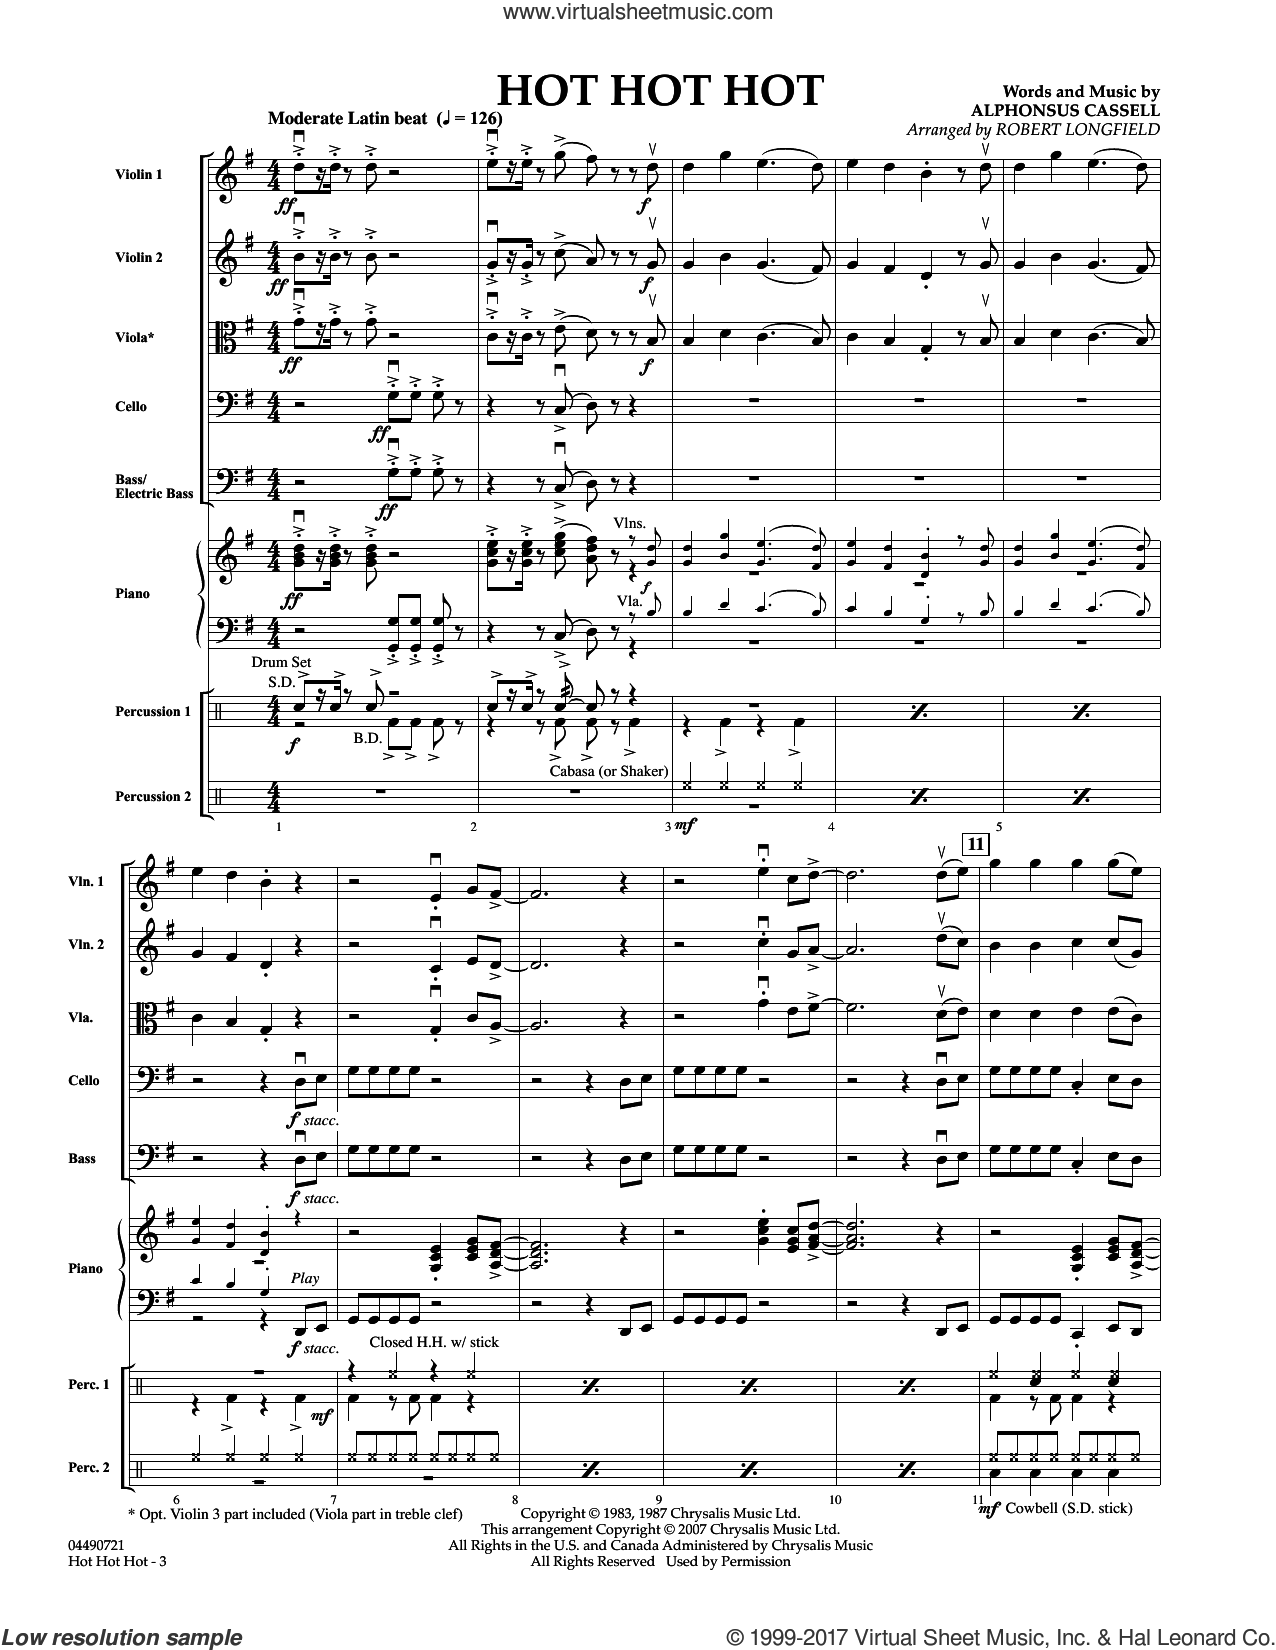 Hot Hot Hot (COMPLETE) sheet music for orchestra by Robert Longfield and Alphonsus Cassell, intermediate